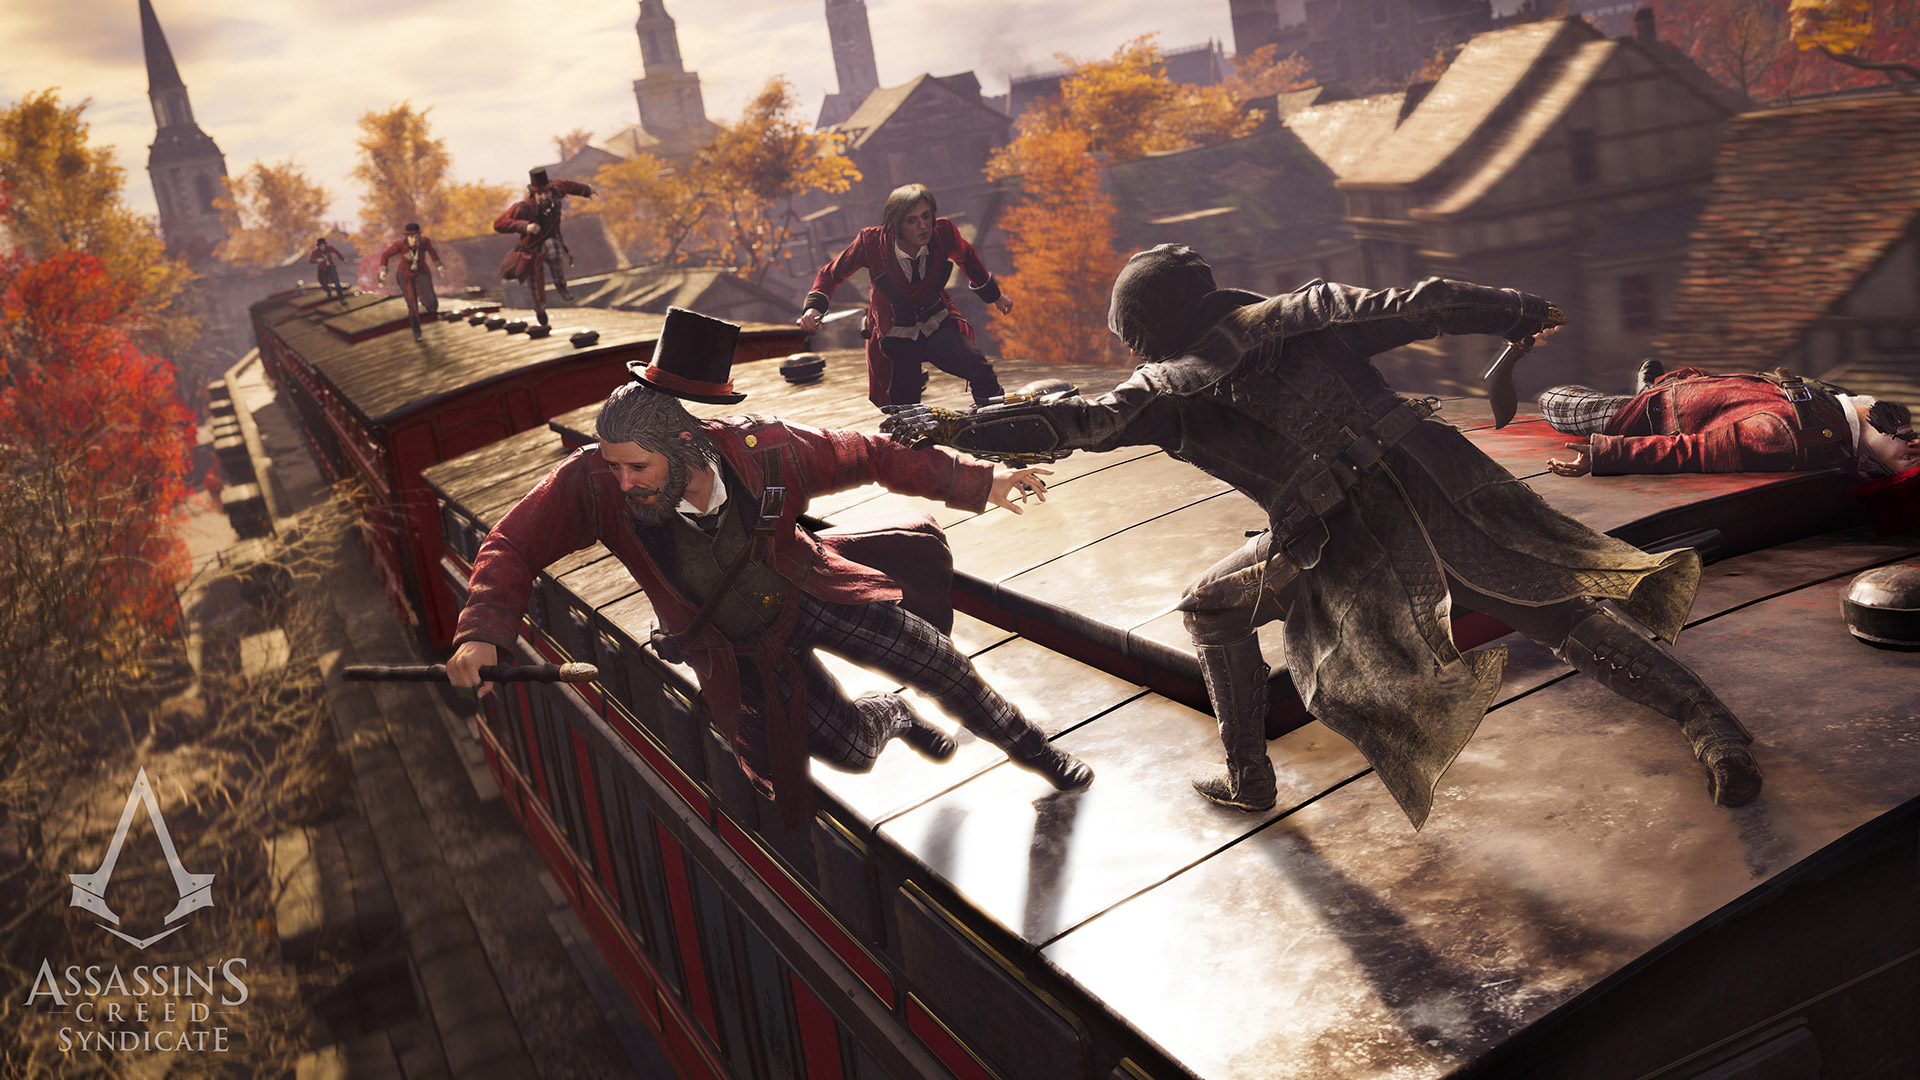 Free Assassin's Creed: Syndicate Wallpaper in 1920x1080